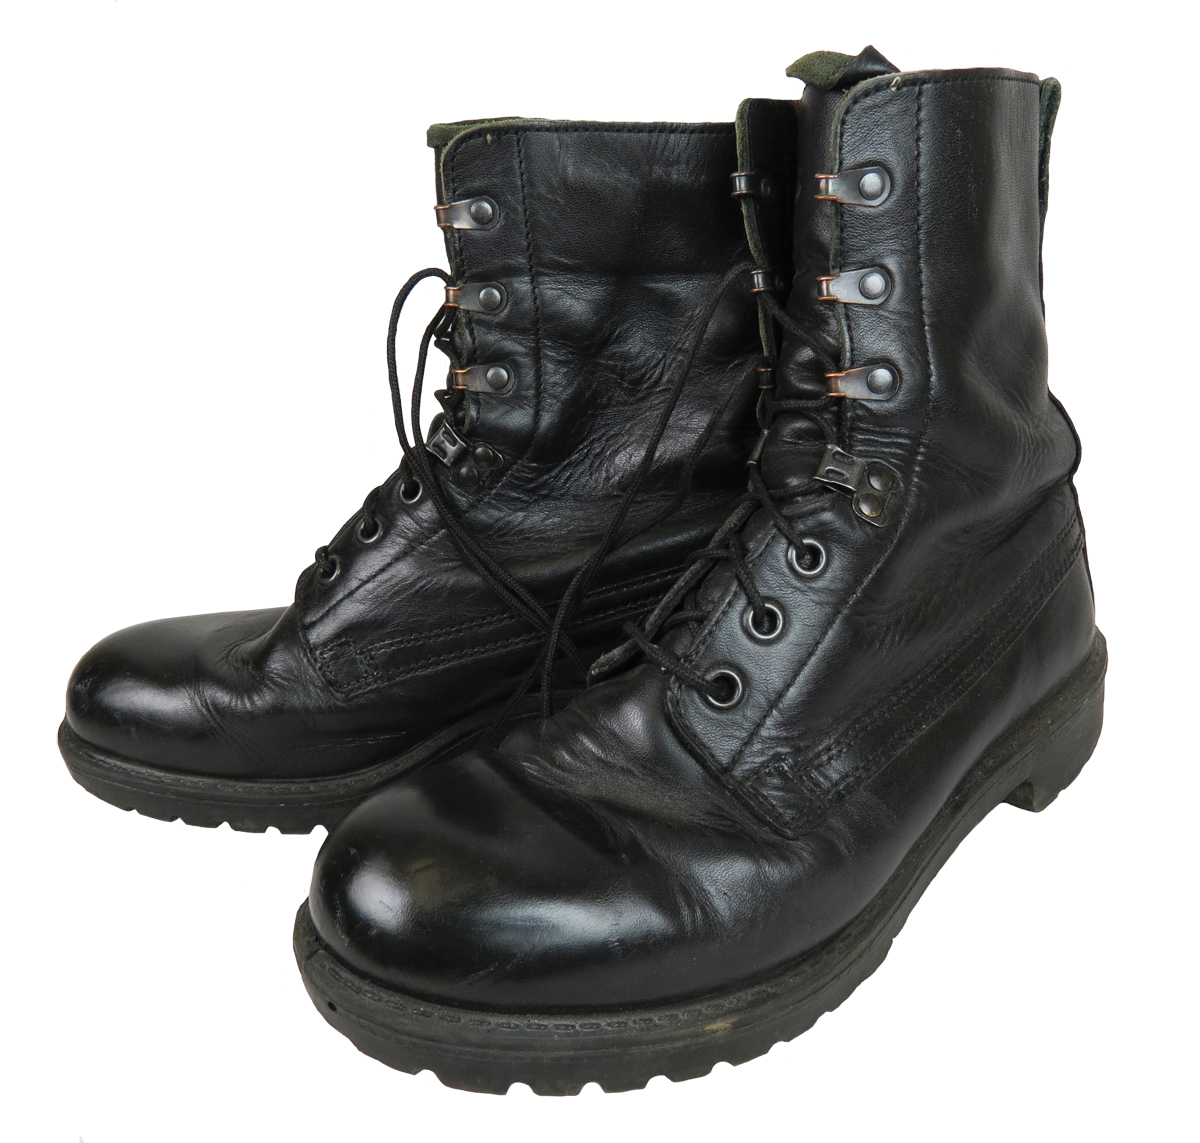 Ex Army British Assault Boots By British Army